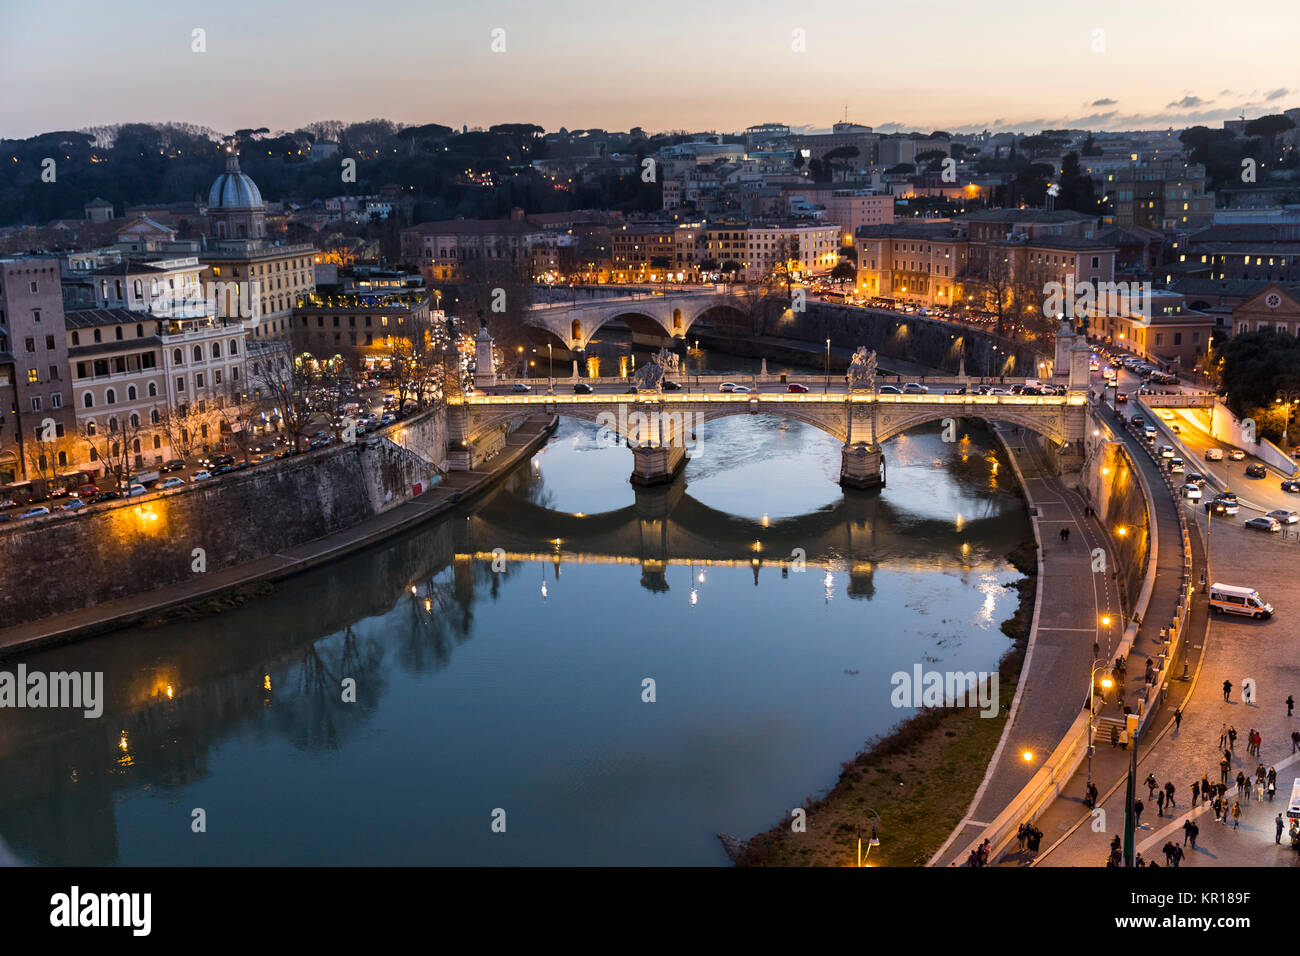 The Tiber river at night. Rome Italy - Stock Image